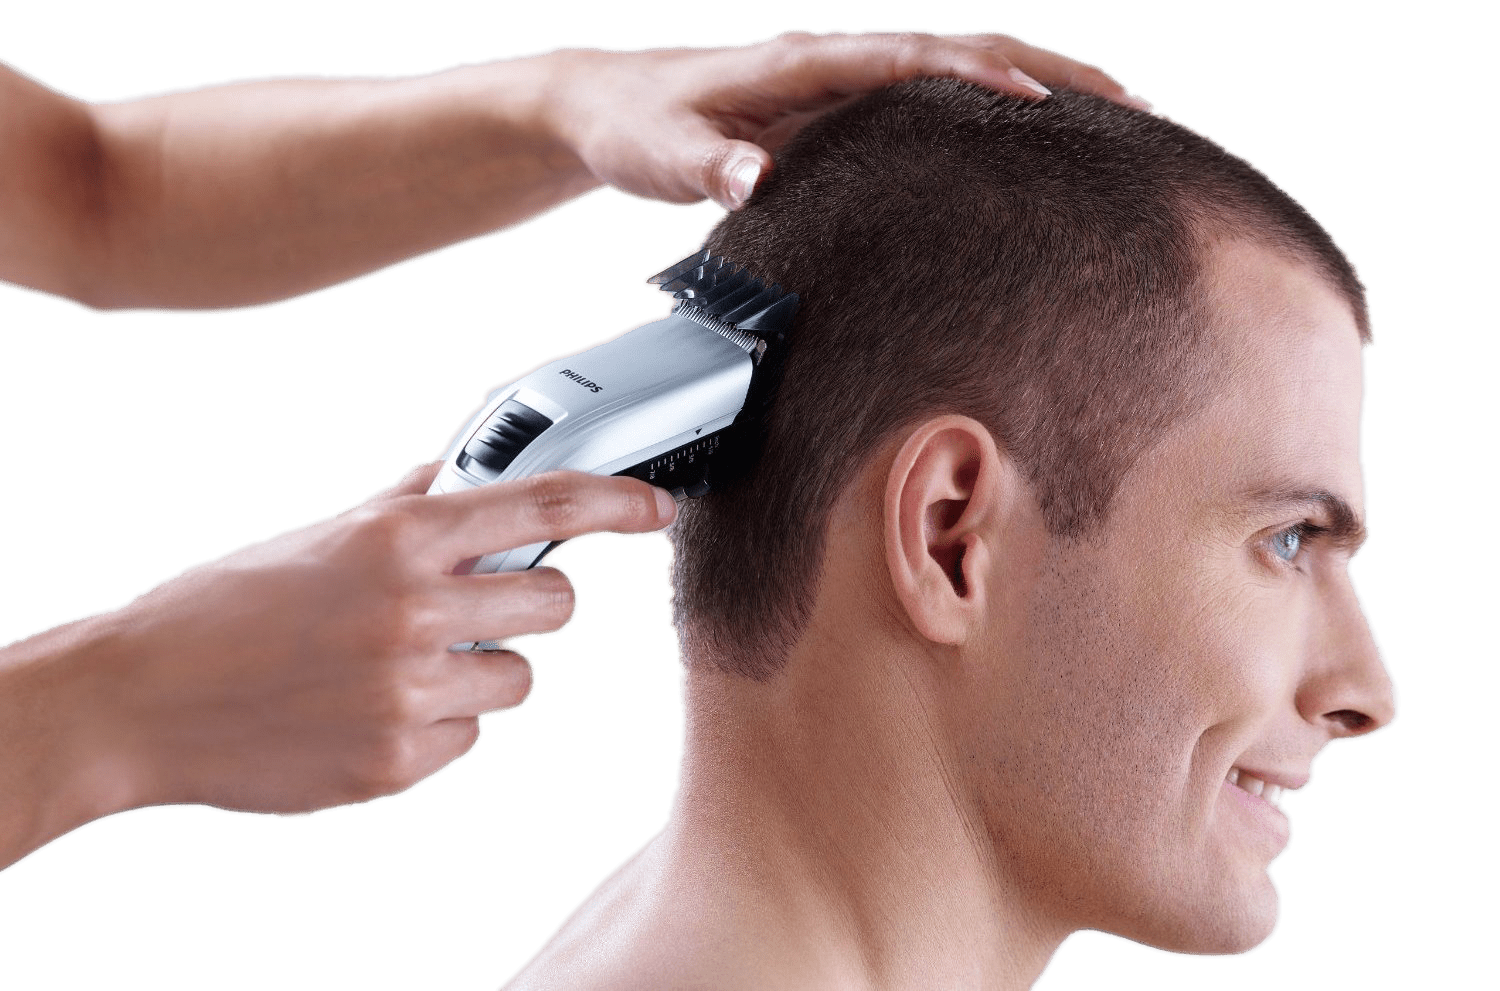 Hair cutting with clipper. Clip bangs diy picture black and white